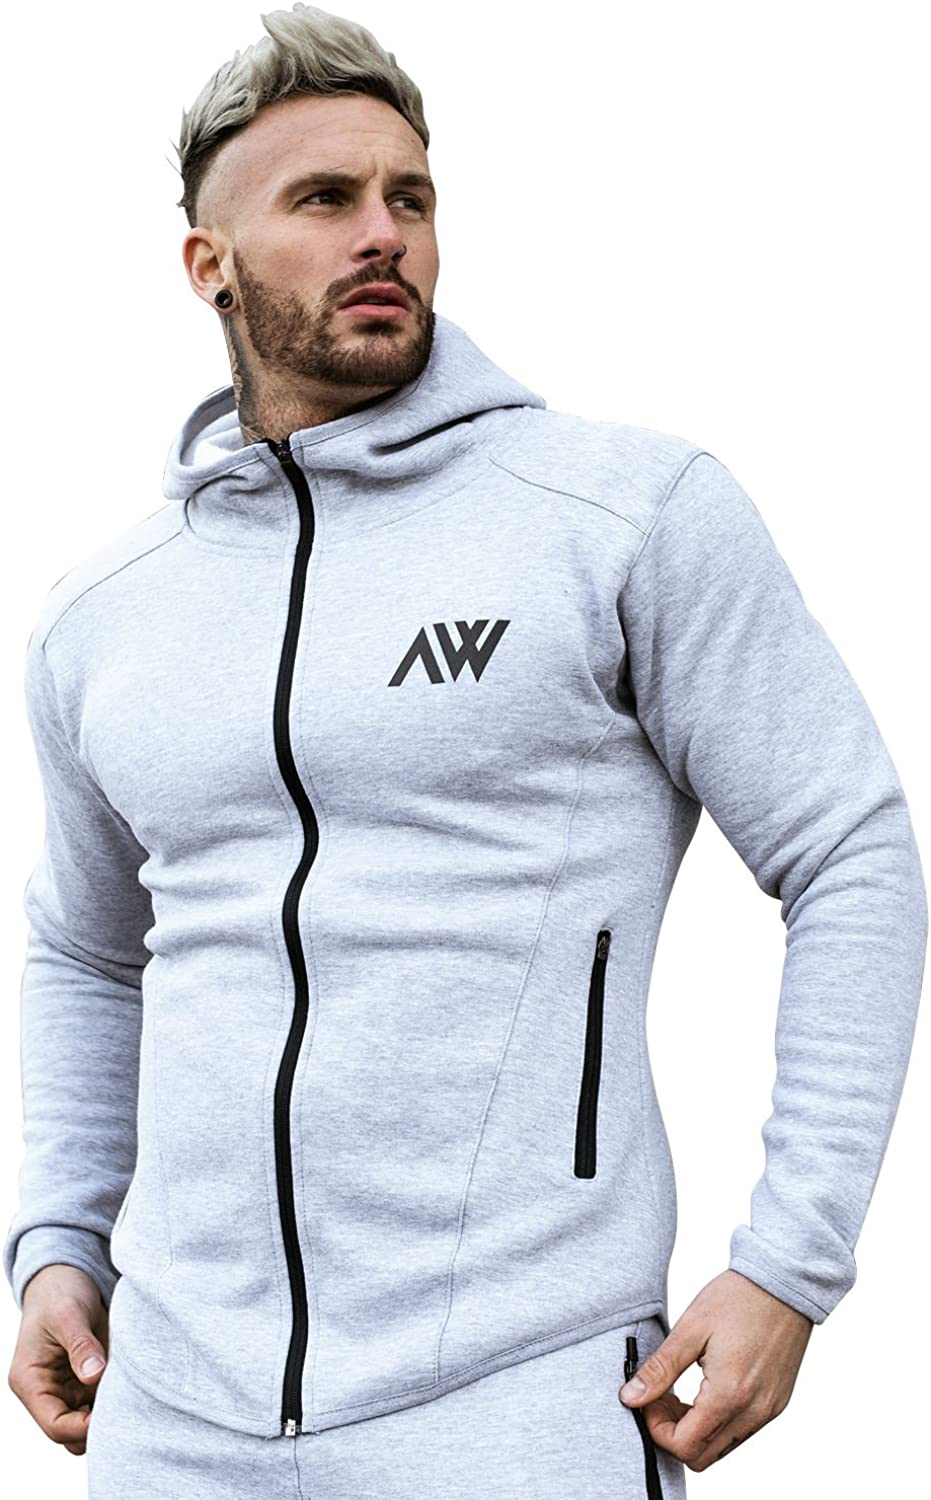 Aspire Wear Sudadera con Capucha y Cremallera Gorra Deportiva Slim Fit Gym Technical Innovative Hooded Active Top Manga Larga